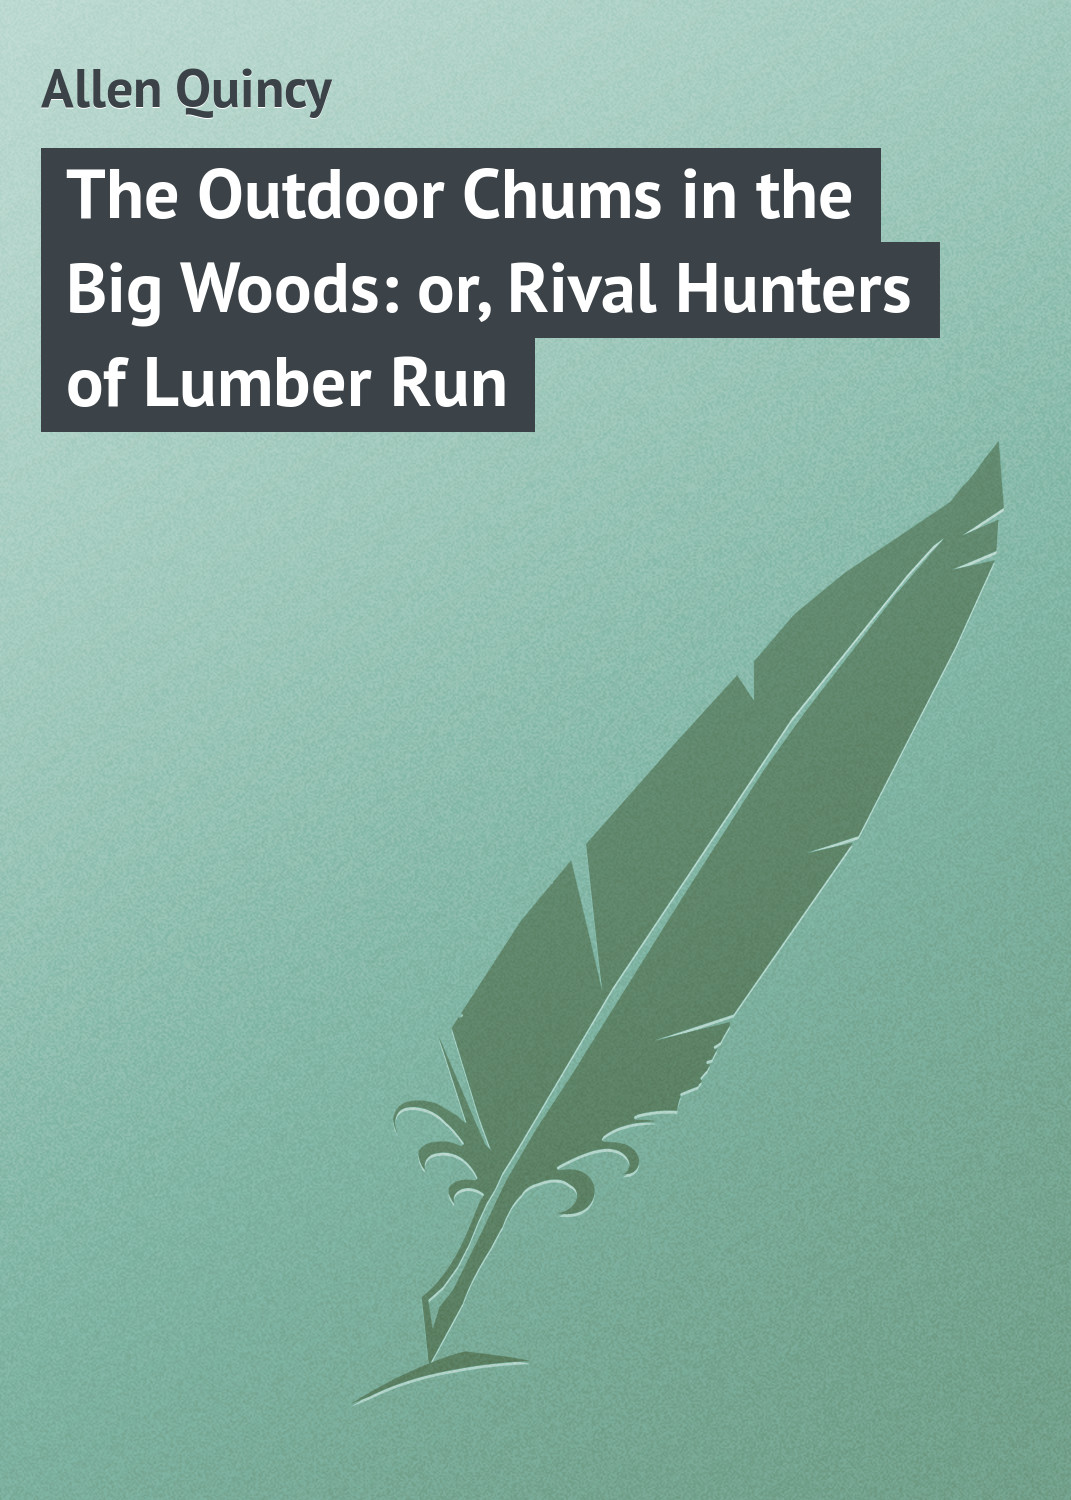 купить Allen Quincy The Outdoor Chums in the Big Woods: or, Rival Hunters of Lumber Run по цене 0 рублей